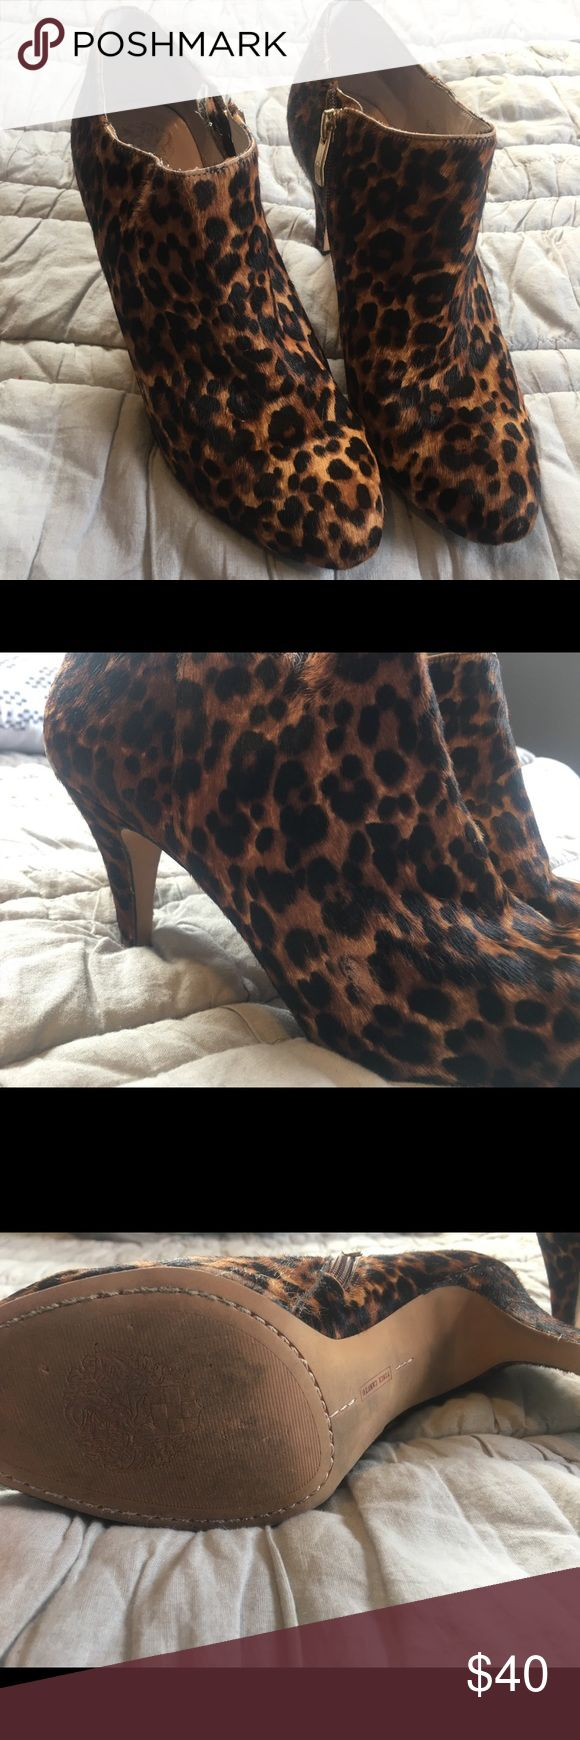 """Vince Camuto Leopard Calf-Hair Ankle Booties Great condition. Some scuff marks. 'Vive' bootie. Side-zip. 3"""" heel. Nordstrom exclusive. Genuine calf-hair. Vince Camuto Shoes Ankle Boots & Booties"""